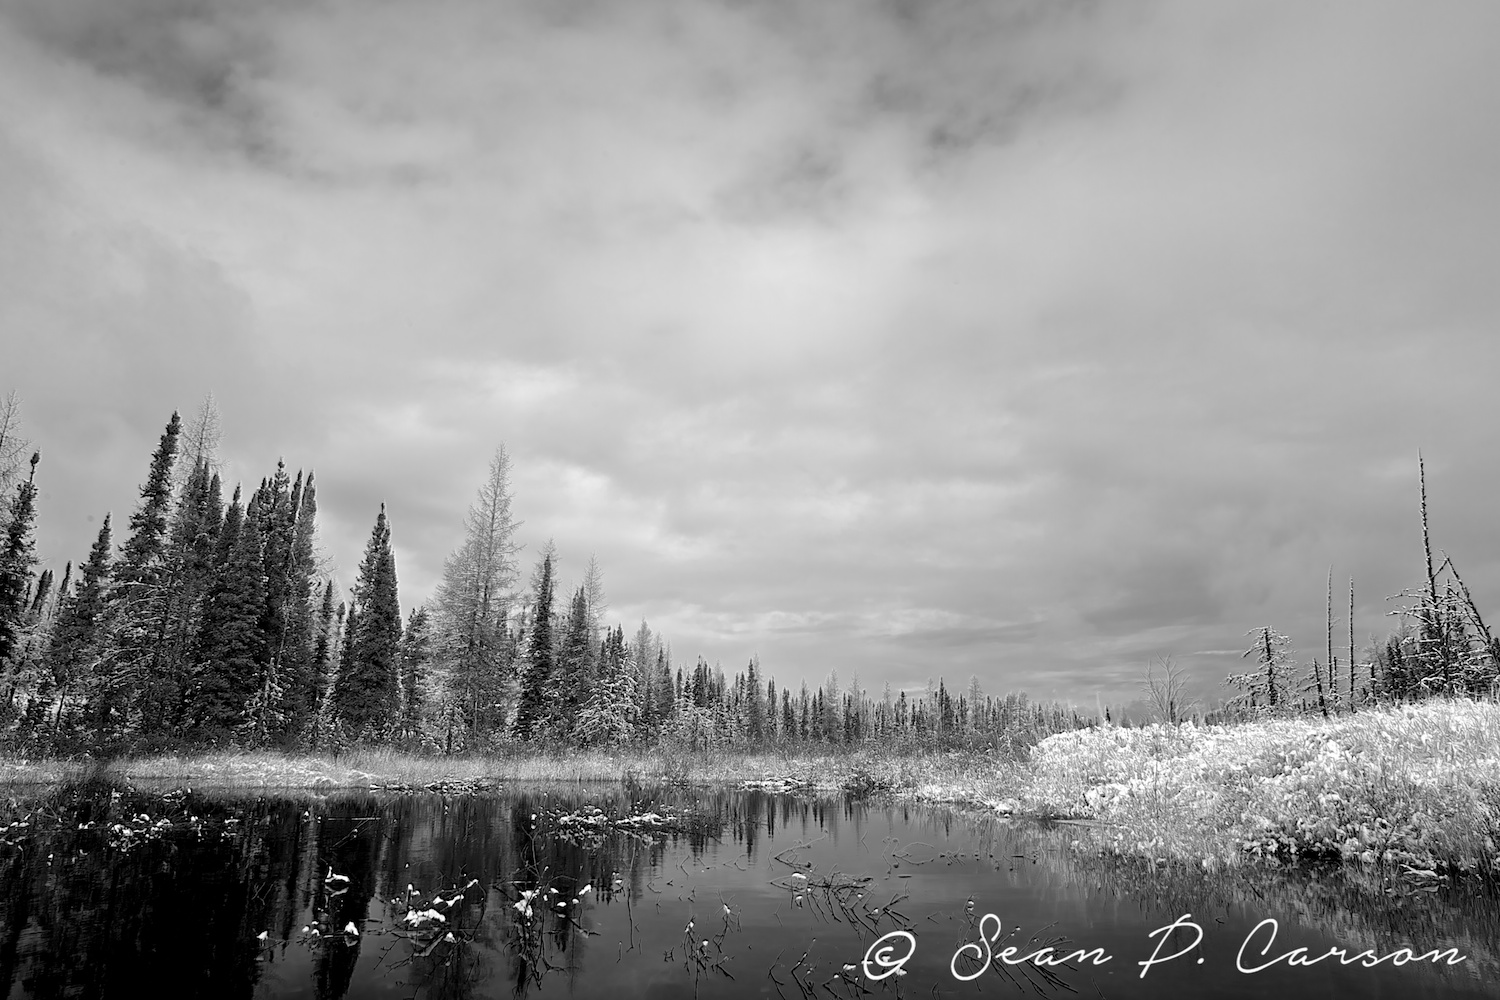 140014-19445-20141031_north-by-north-east-exposure-studio-photography-sean-p-carson.jpg